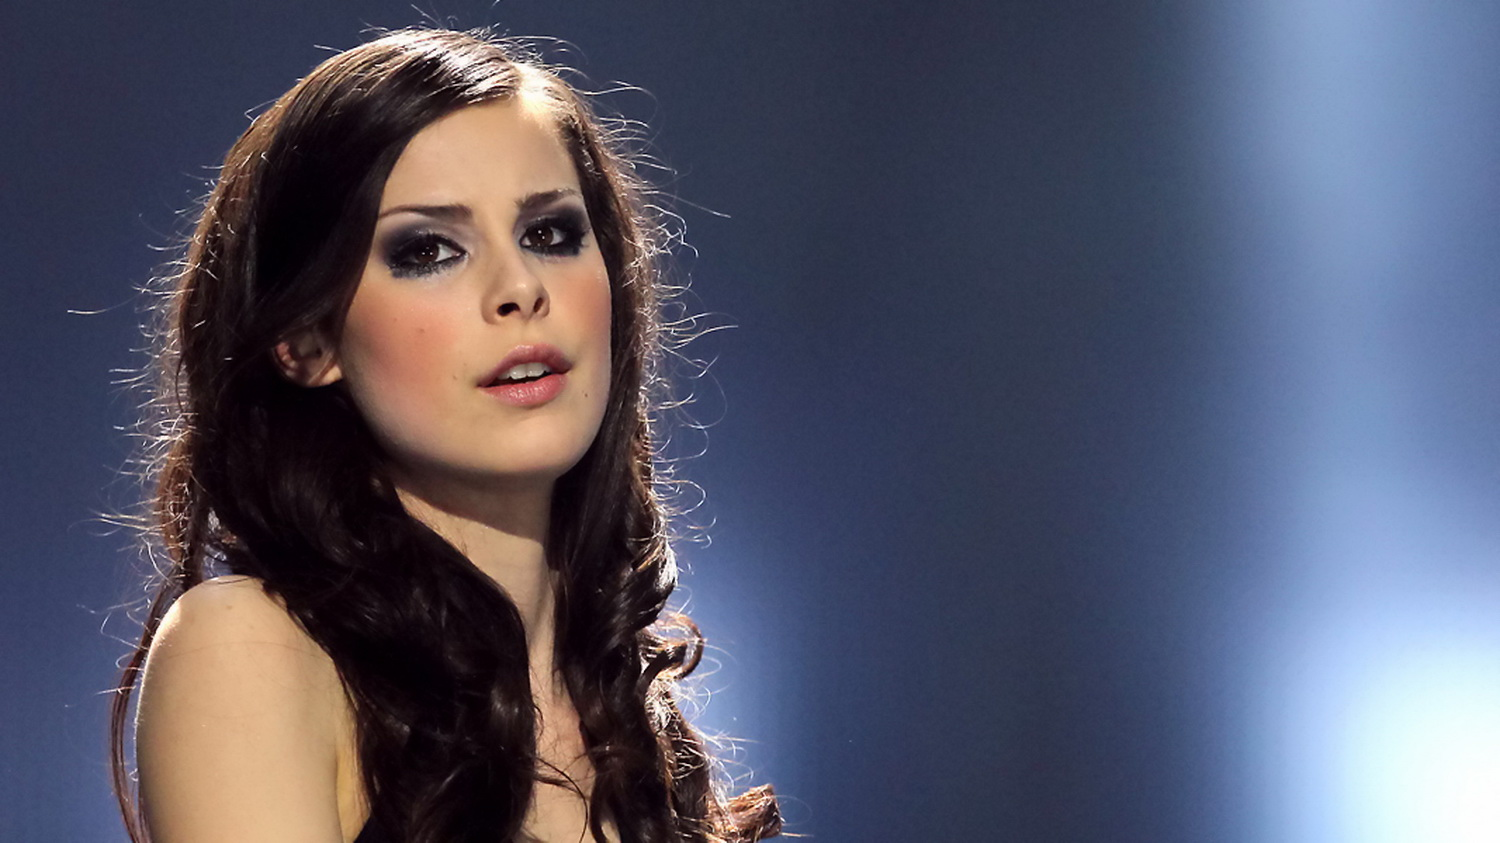 Lena Meyer Landrut Pics From Eurovision Song Contest Finale